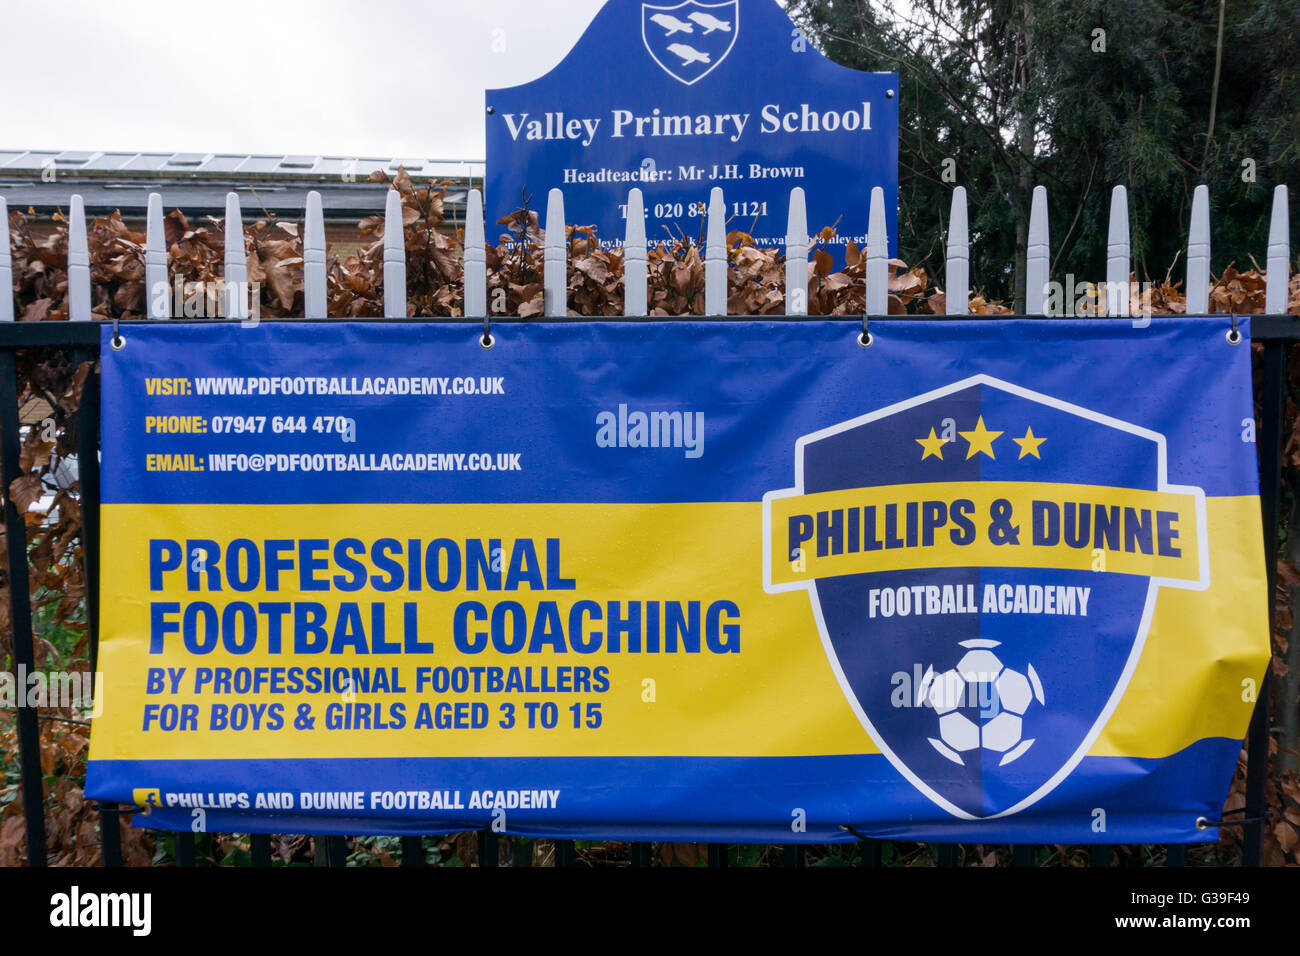 Professional Football Coaching sign for the Phillips and Dunne Football Academy outside a south London primary school. - Stock Image